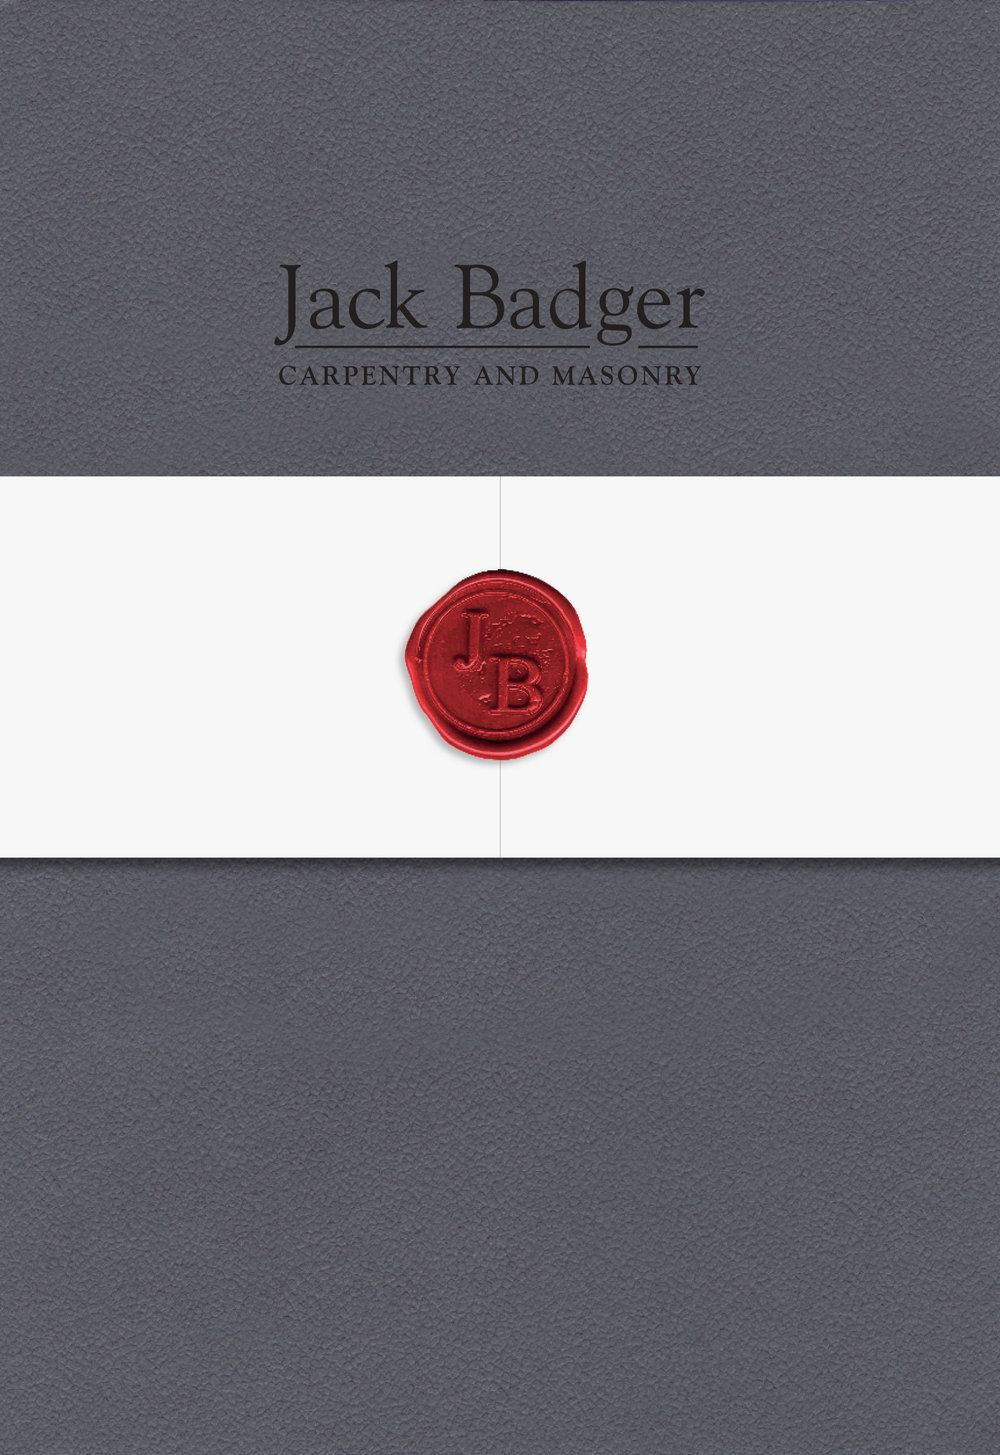 Jack Badger Booklet October 2017-1.jpg